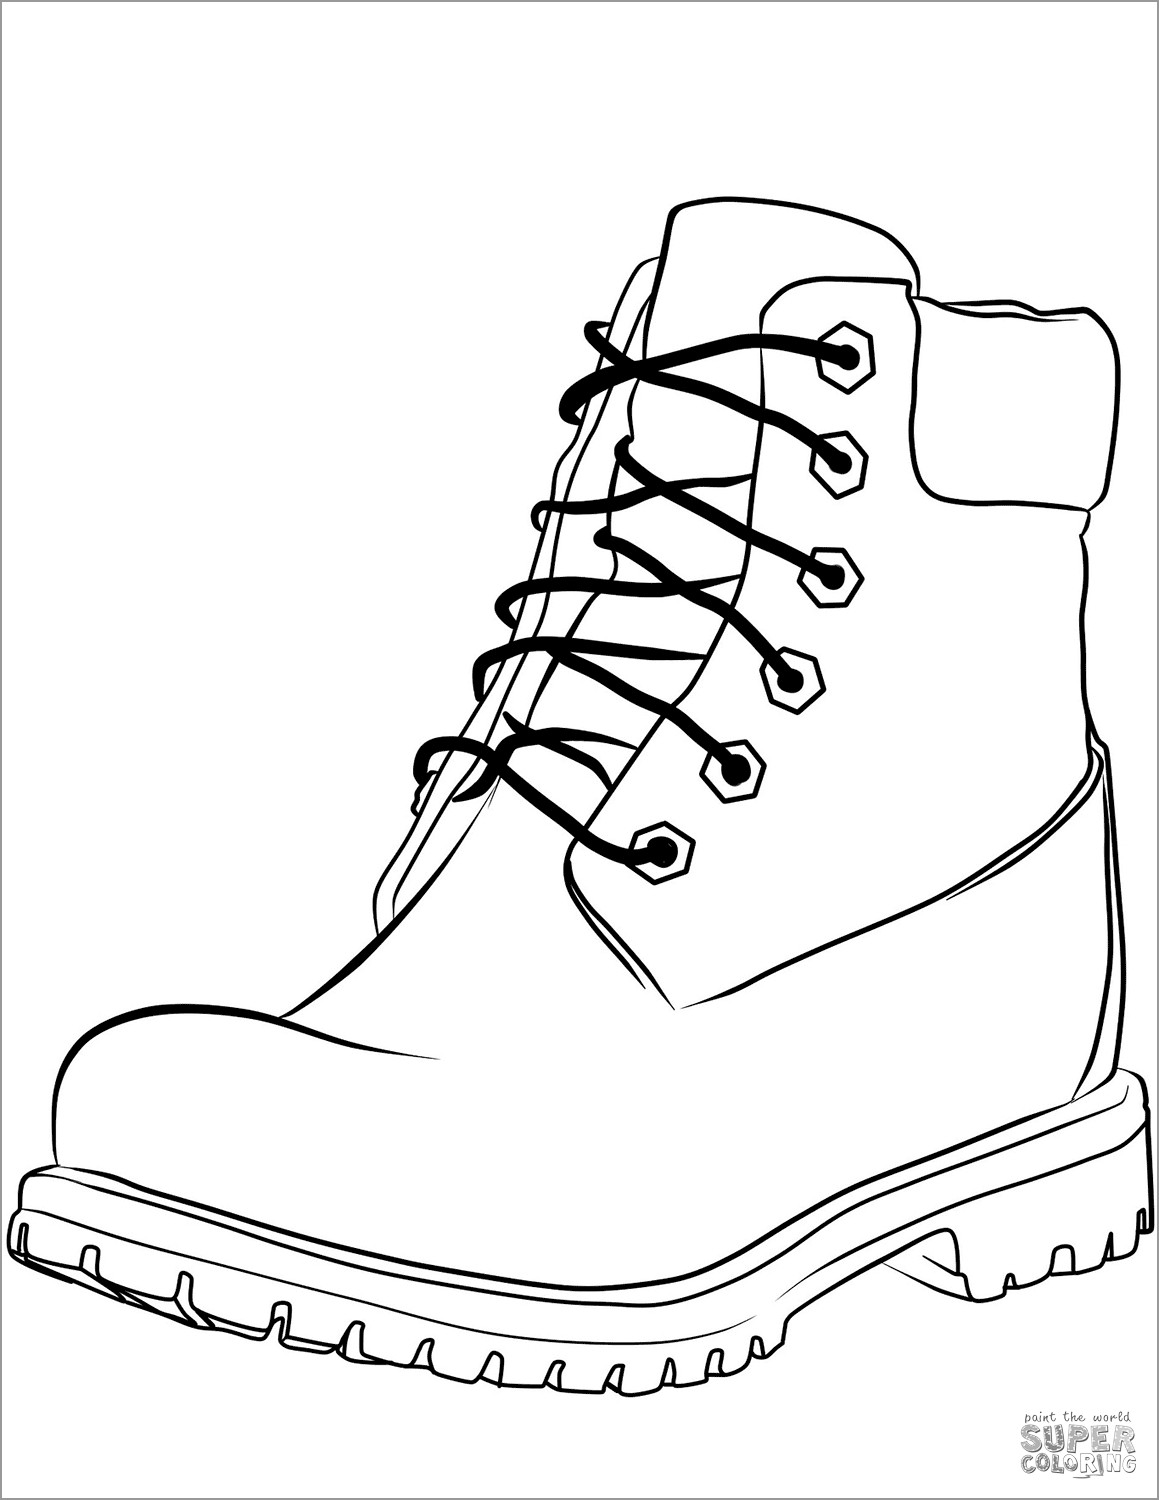 Work Boots Coloring Page